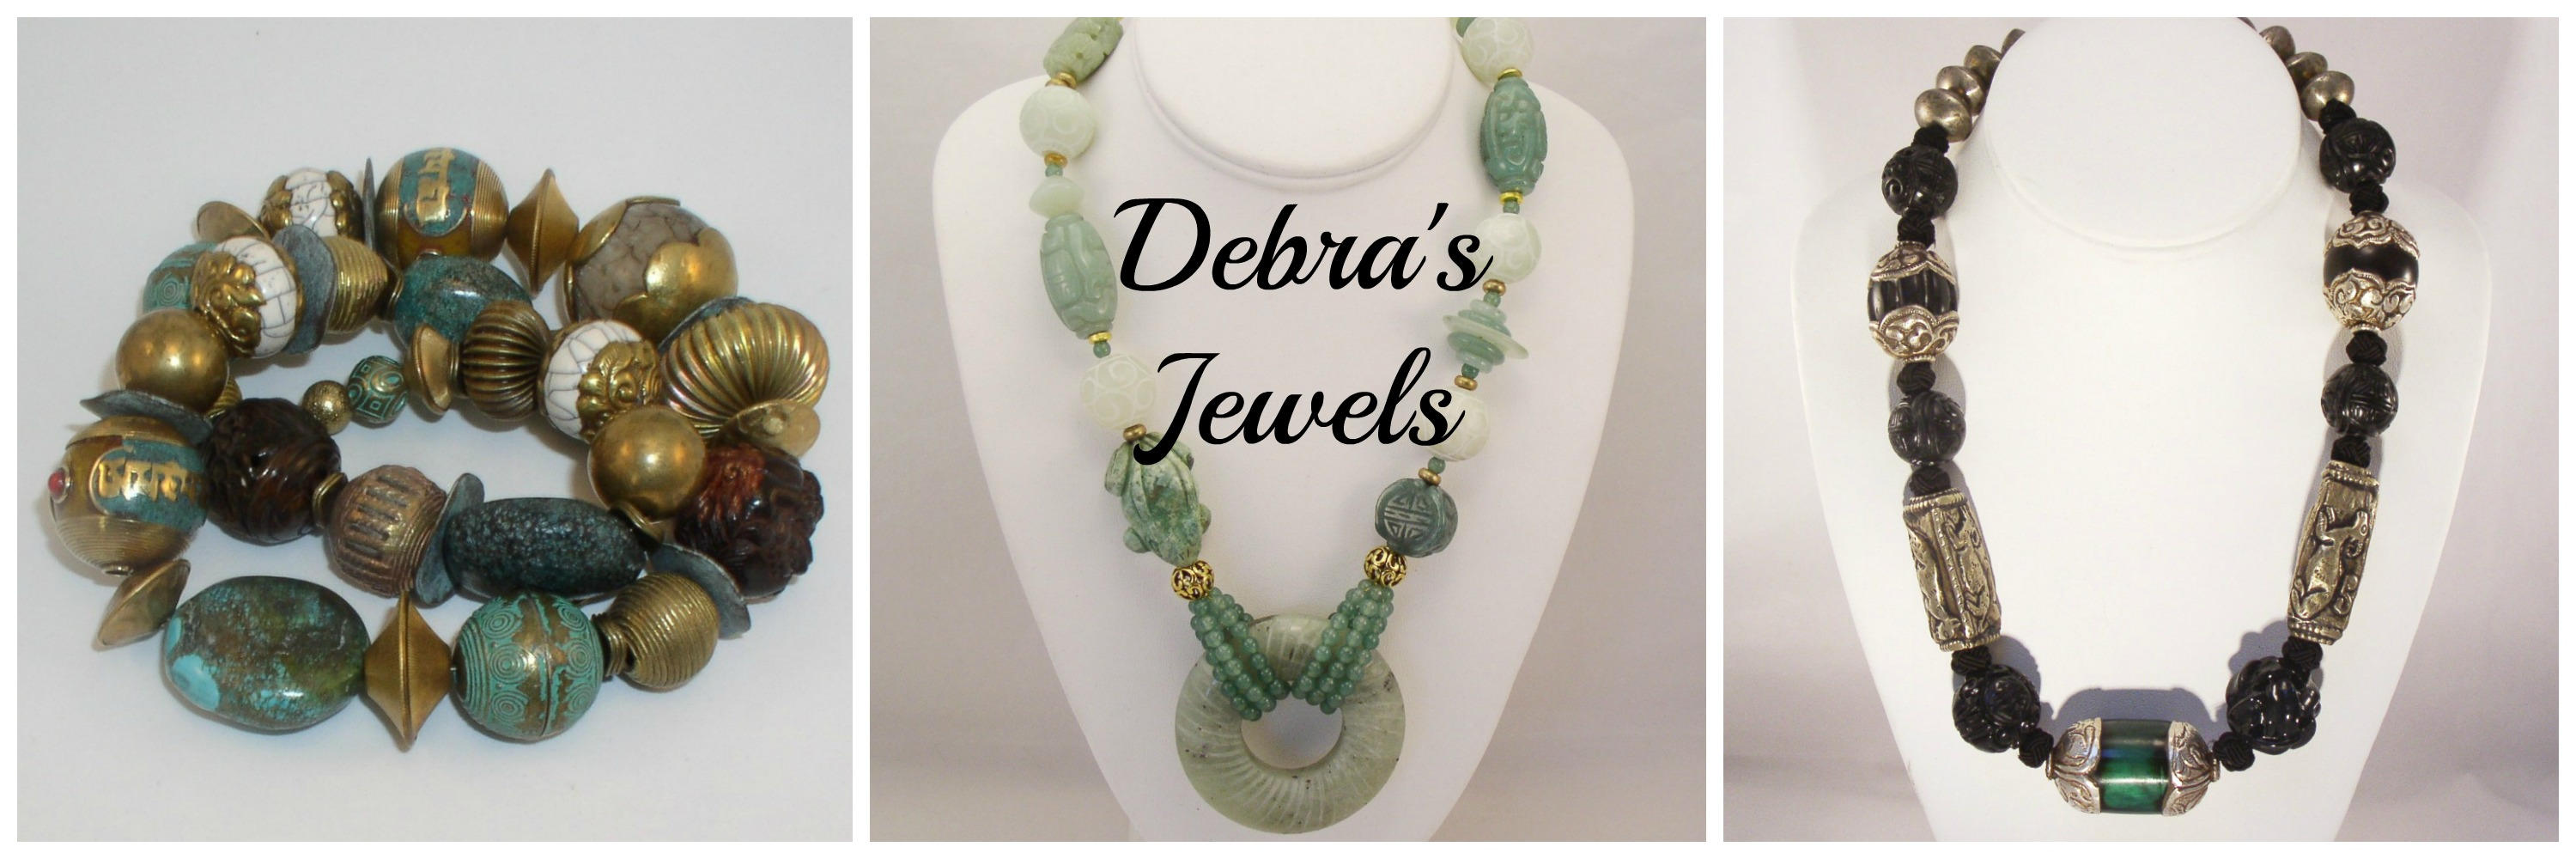 debra-s-jewels-banner.jpg